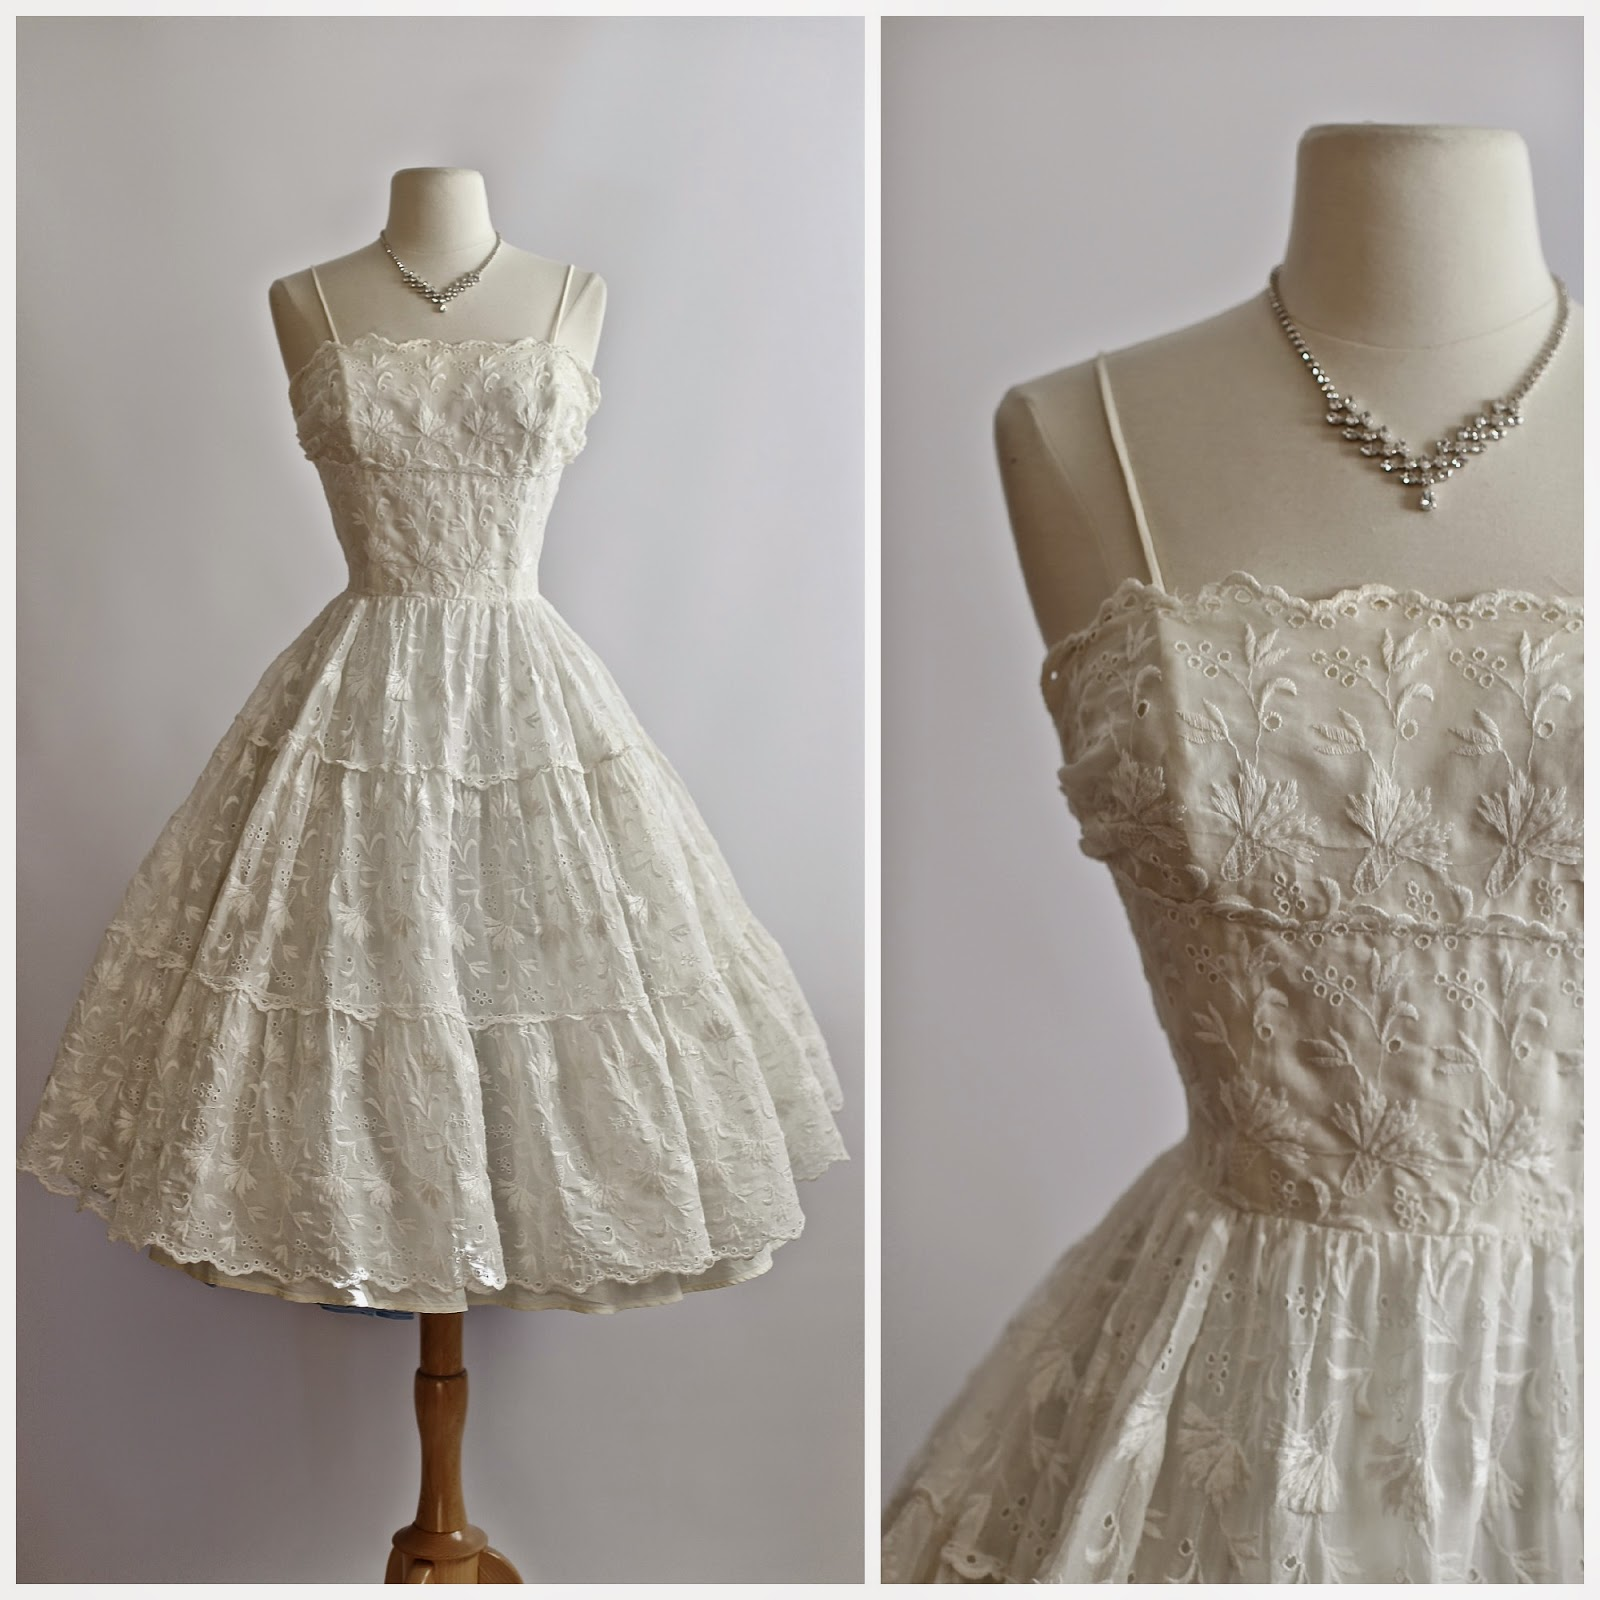 1950 S Wedding Dress In Embroidered Cotton Eyelet Available The Bridal Salon And Our Etsy